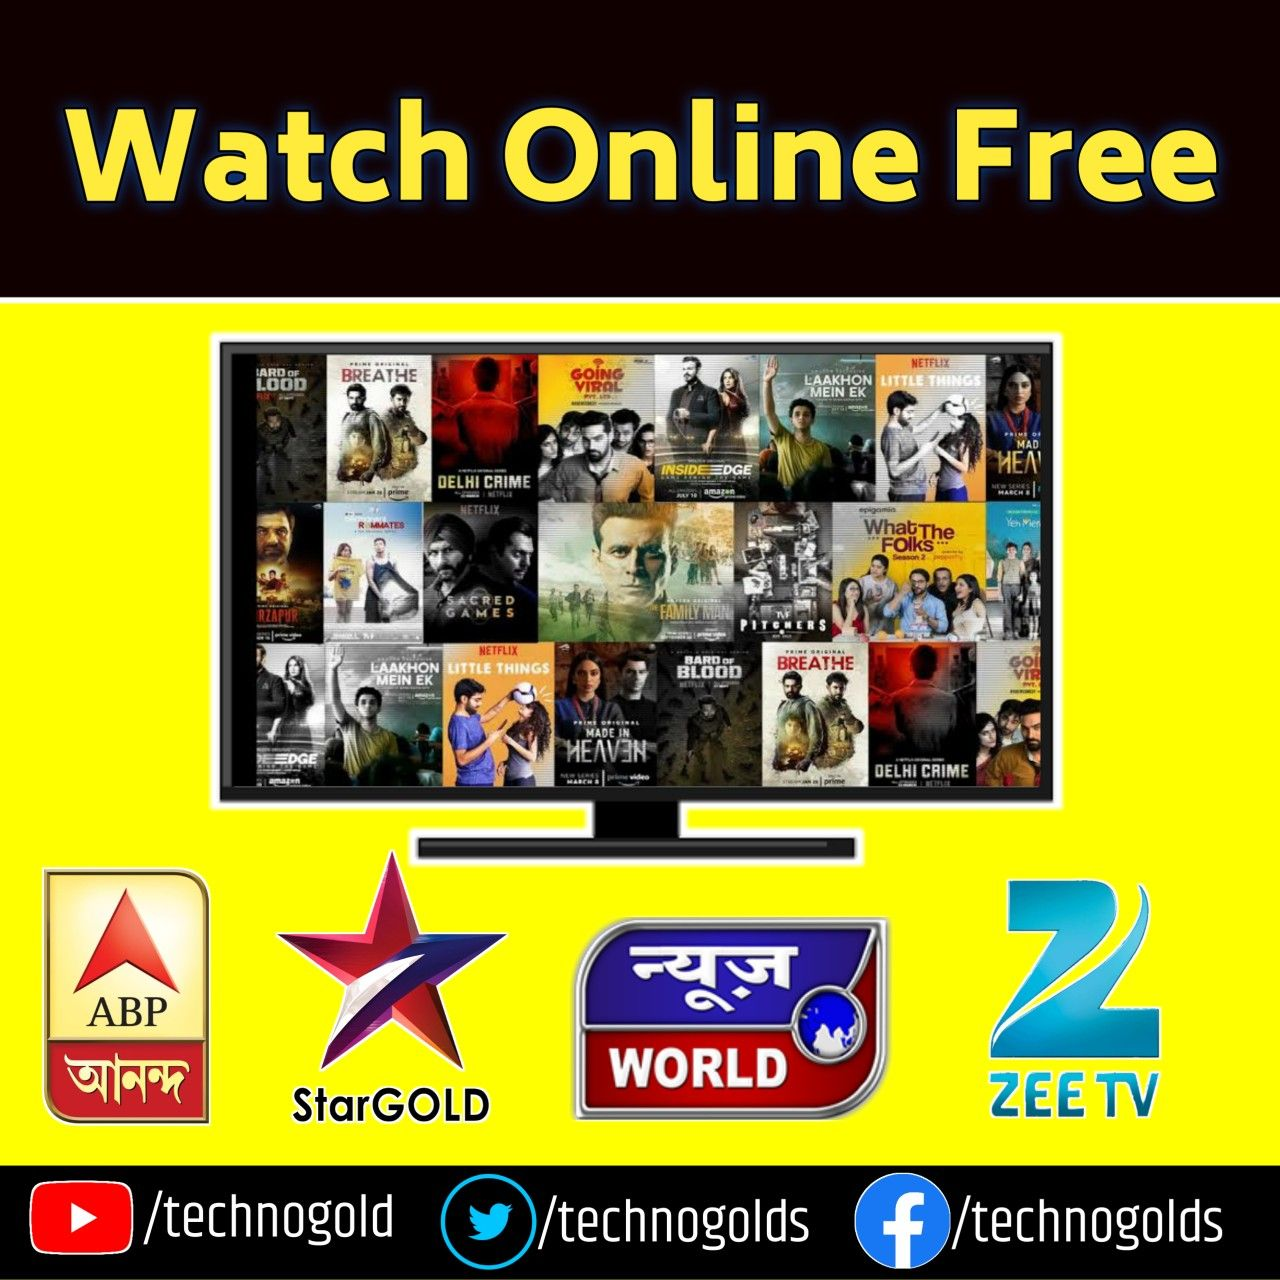 All WebSeries Movies Live Tv Watch Online Free App